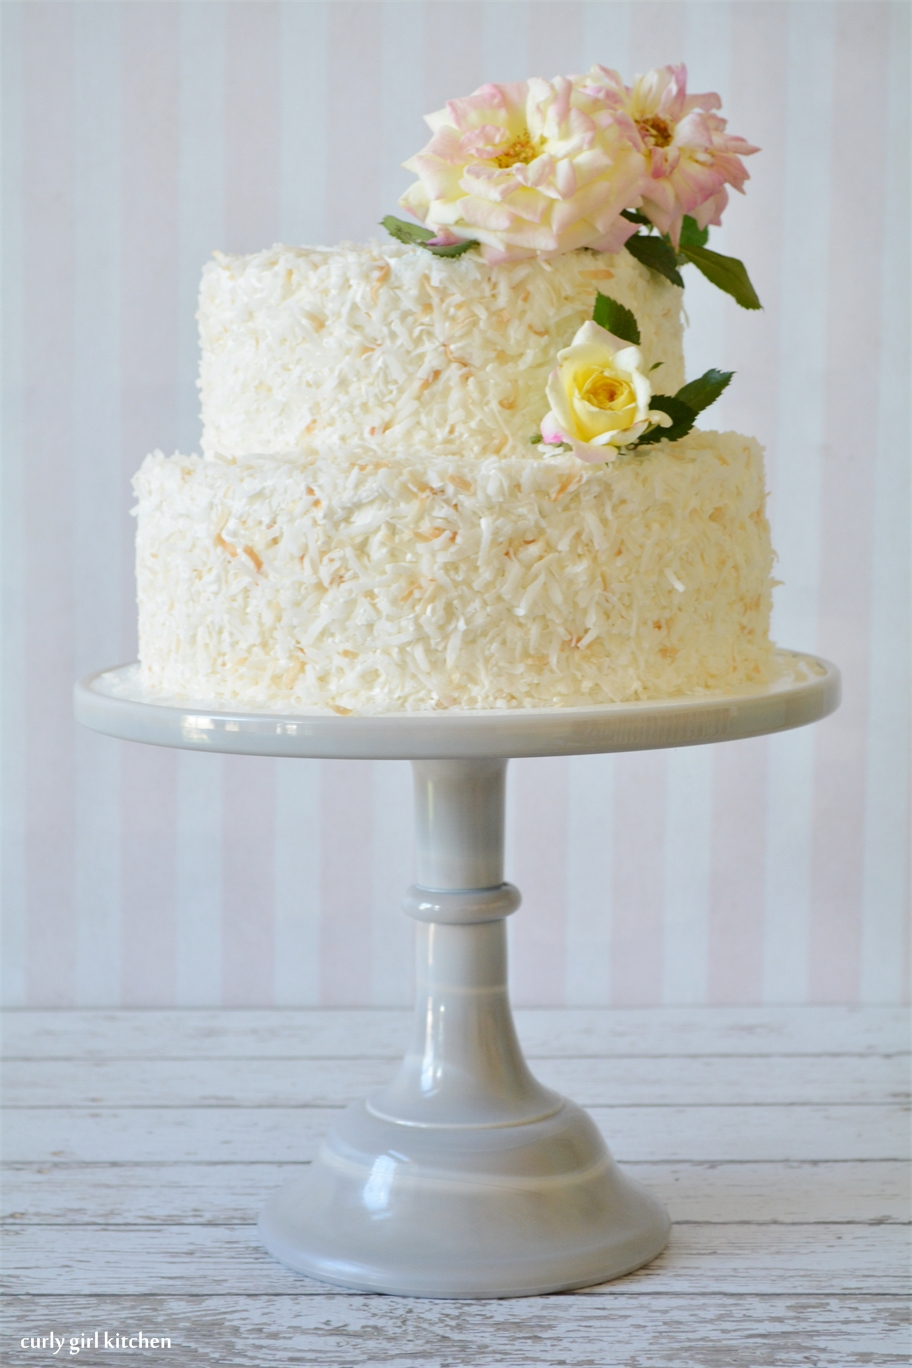 Curly Girl Kitchen  White Chocolate Coconut Cake White Chocolate Coconut Cake